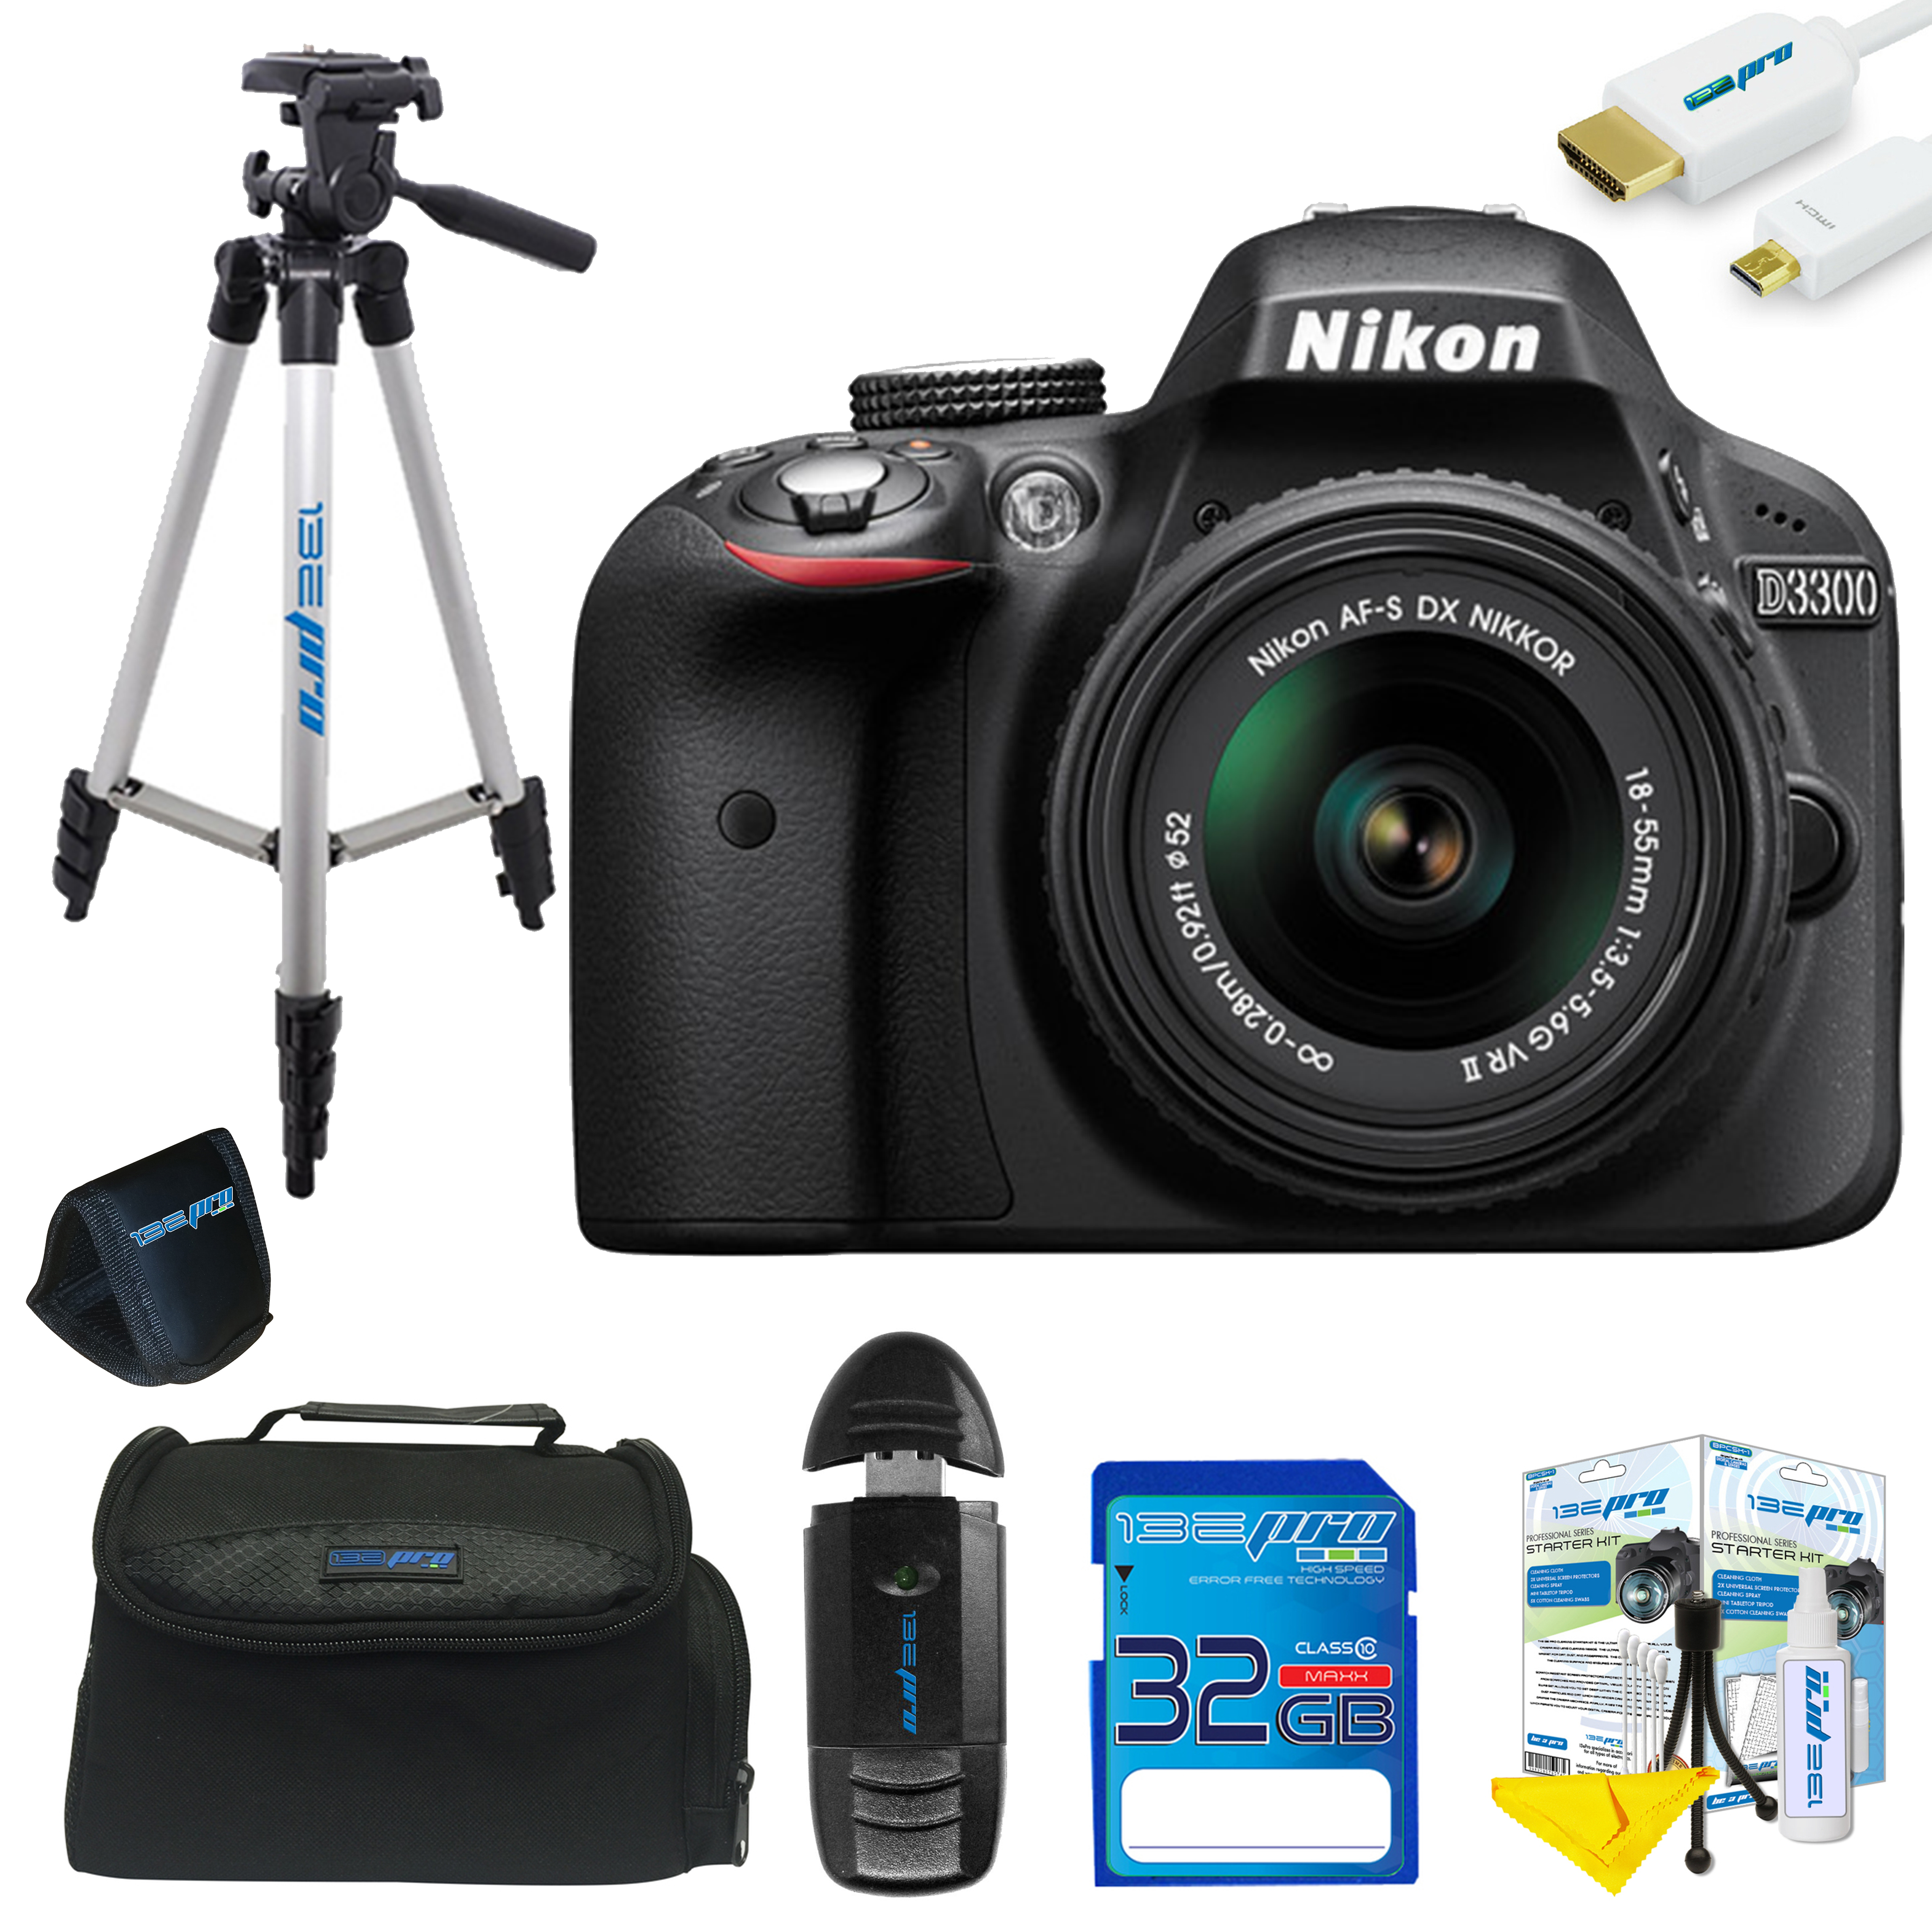 Nikon D3300 DSLR Camera with 18-55mm Lens + Pixi Basic Kit